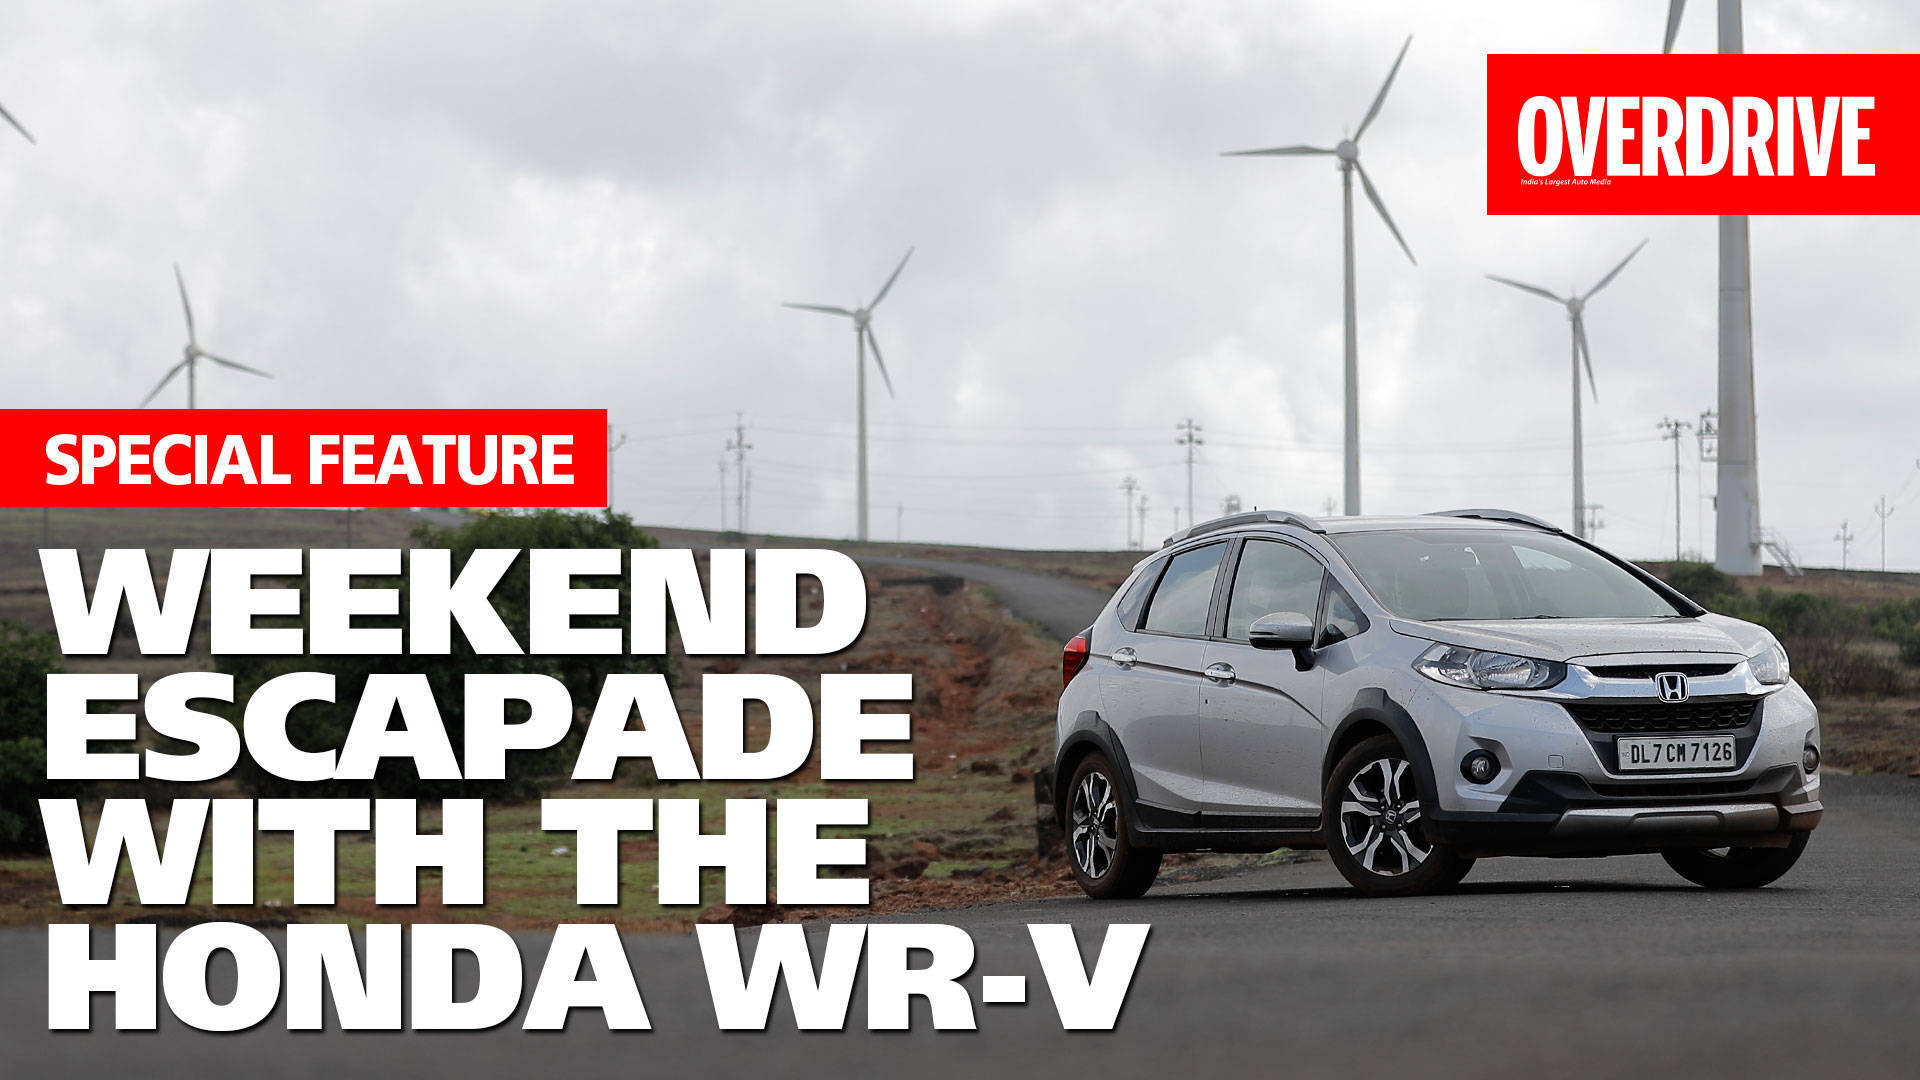 Weekend escapade with the Honda WR-V